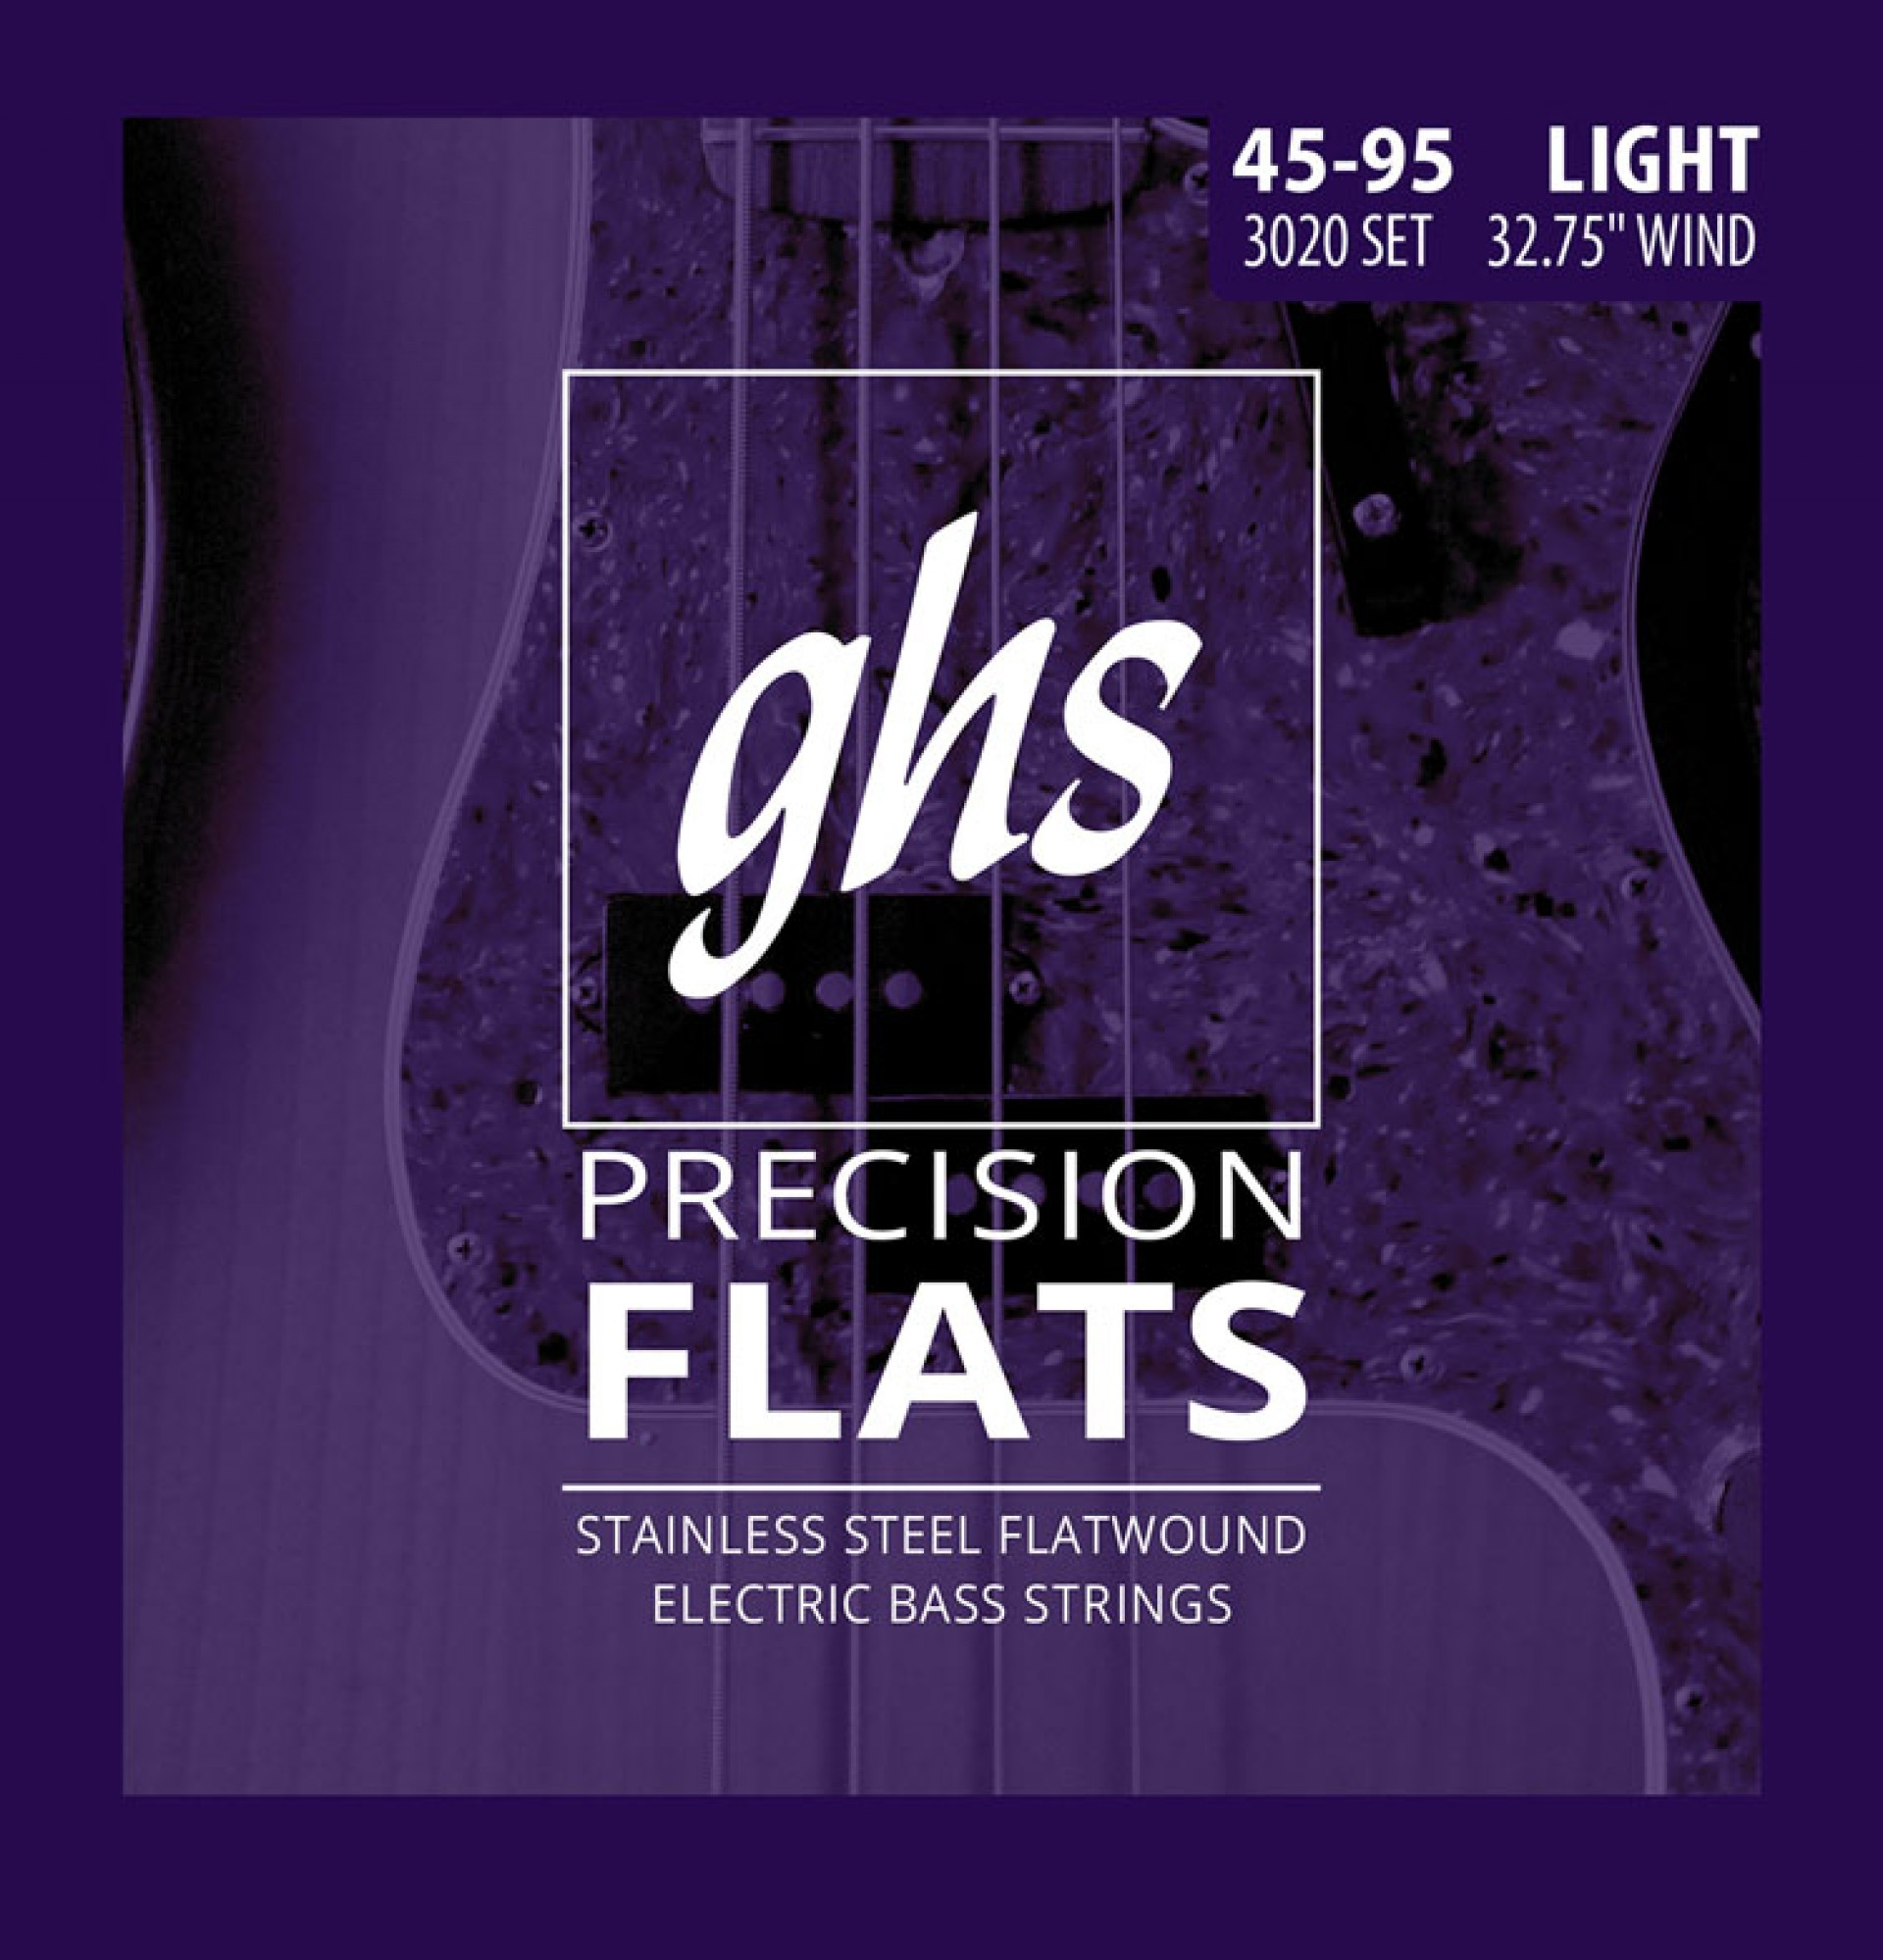 GHS 3020 Precision Flats Flatwound Bass Strings Short Scale - 4-String 45-095 Light